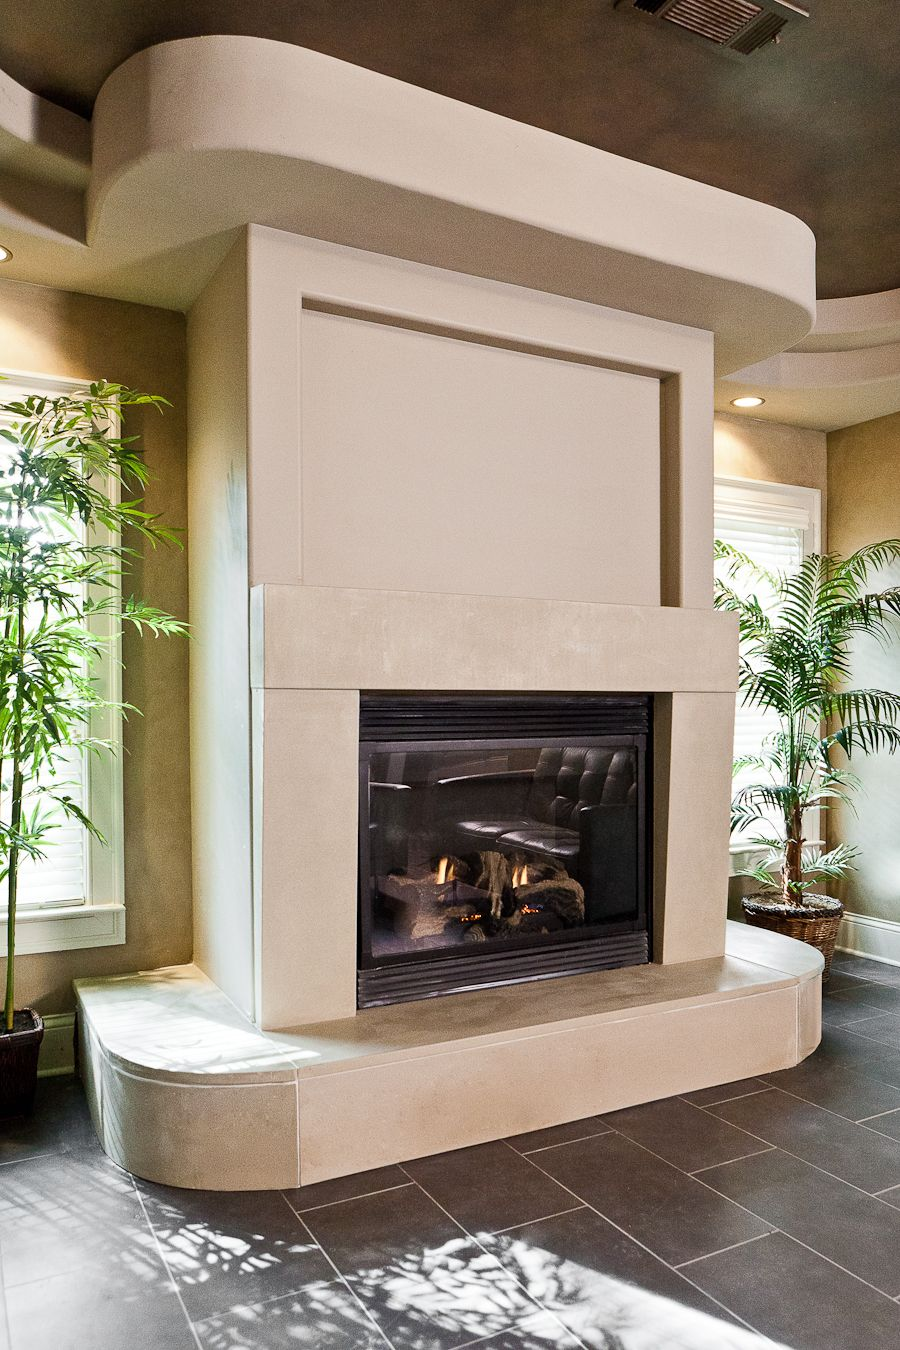 Fireplace Mantels Atlanta Poured Concrete Fireplace Gas Fireplace Insert